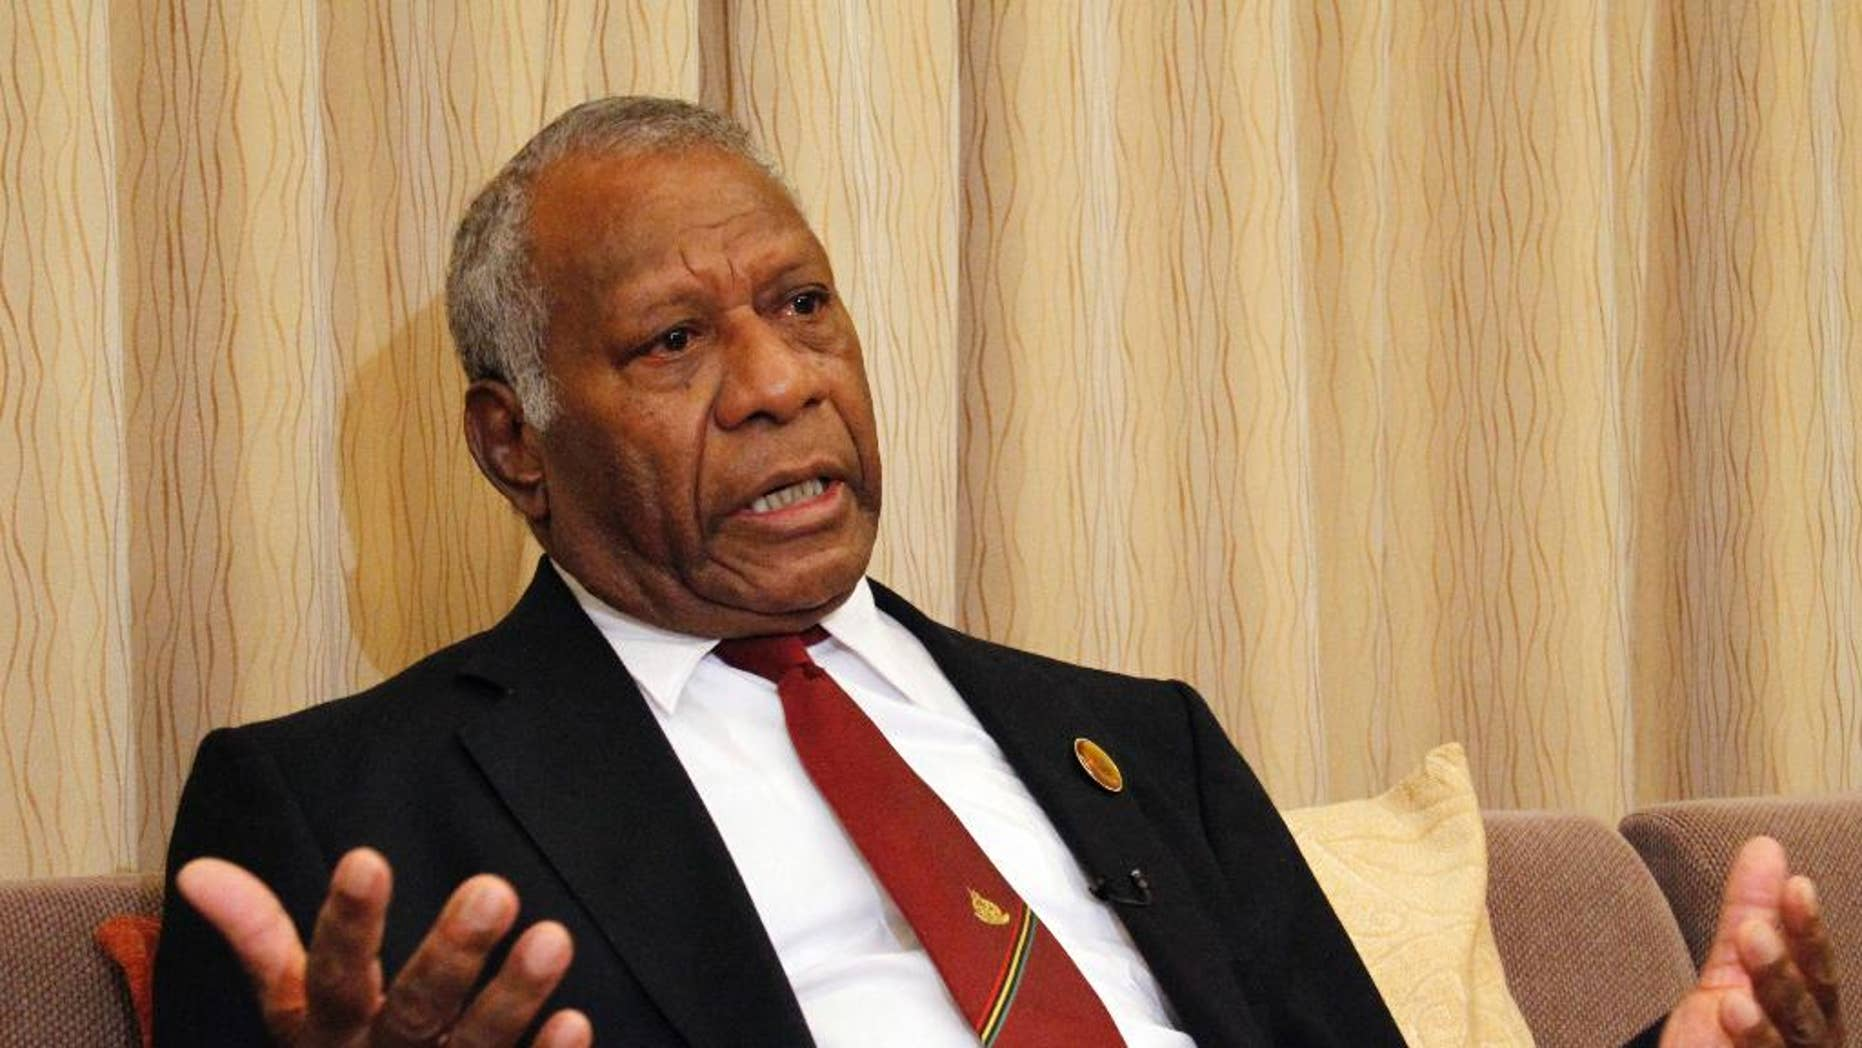 """FILE - In this March 16, 2015 file photo, Vanuatu President Baldwin Lonsdale speaks during an interview in his hotel room in Sendai, Miyagi prefecture, northeastern Japan while attending a U.N. conference on disaster risk reduction. The South Pacific island nation of Vanuatu found itself in political chaos Tuesday, Oct. 13 following an extraordinary few days in which 14 lawmakers were found guilty of corruption but were then pardoned by one of their own while the president was abroad. The events have created a constitutional crisis for Lonsdale, who promised he would find a legal avenue to """"clean up the mess."""" (AP Photo/Koji Ueda, File)"""